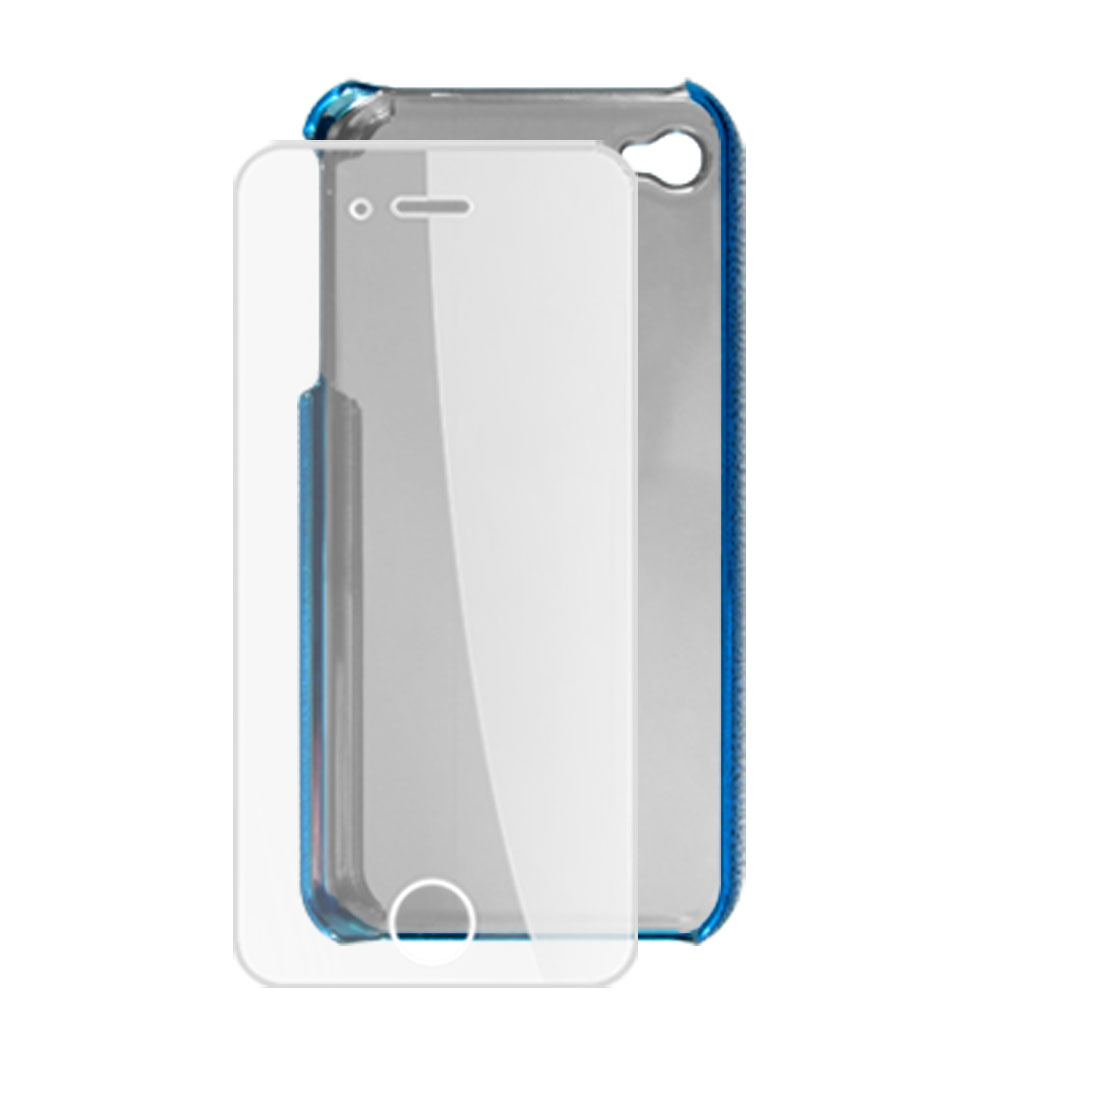 Blue Glittery Plastic Back Case + Screen Protector for iPhone 4 4G